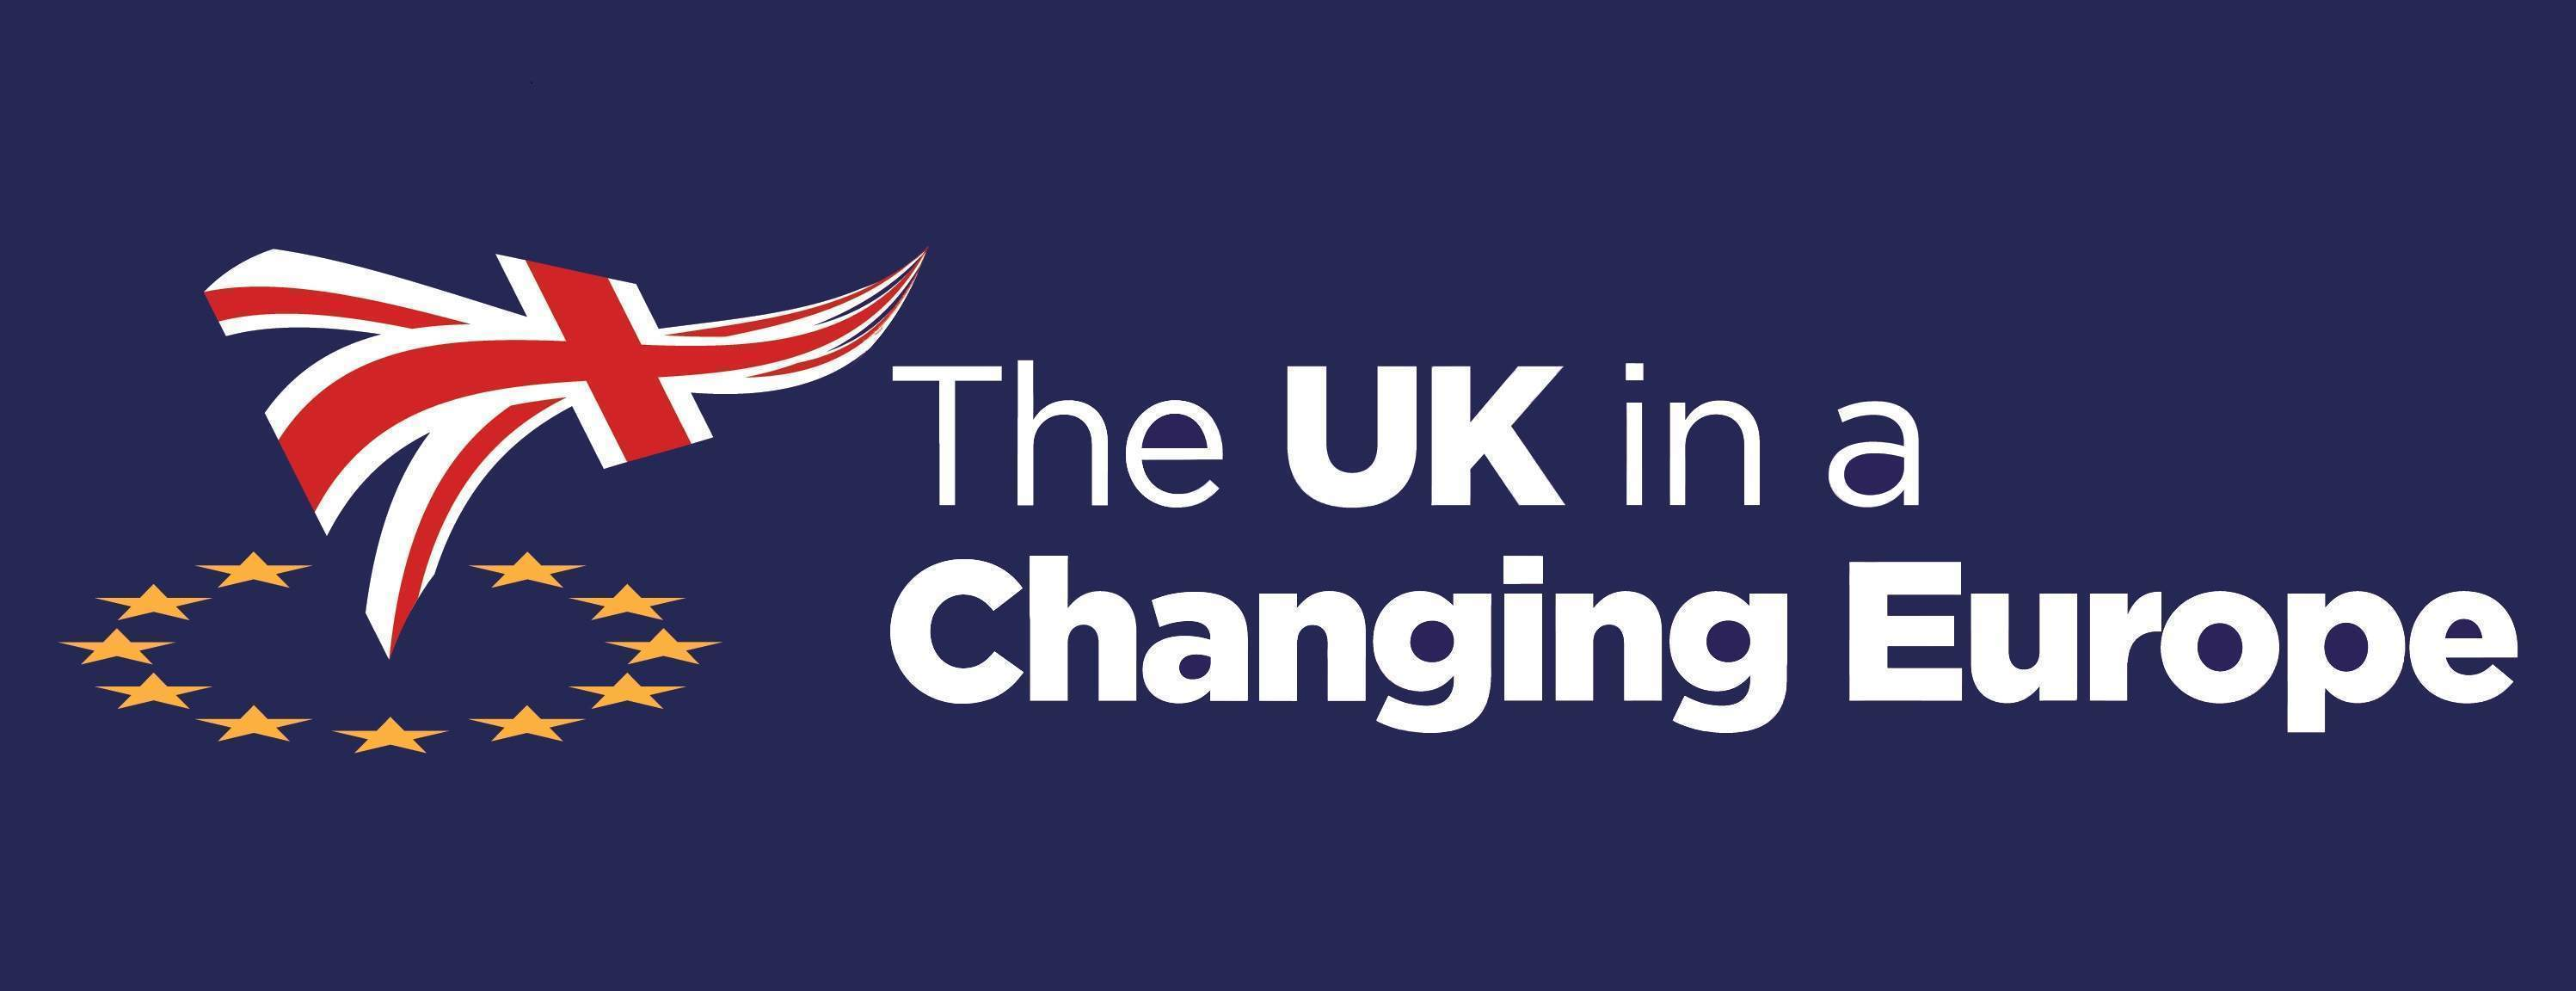 The UK in a Changing Europe